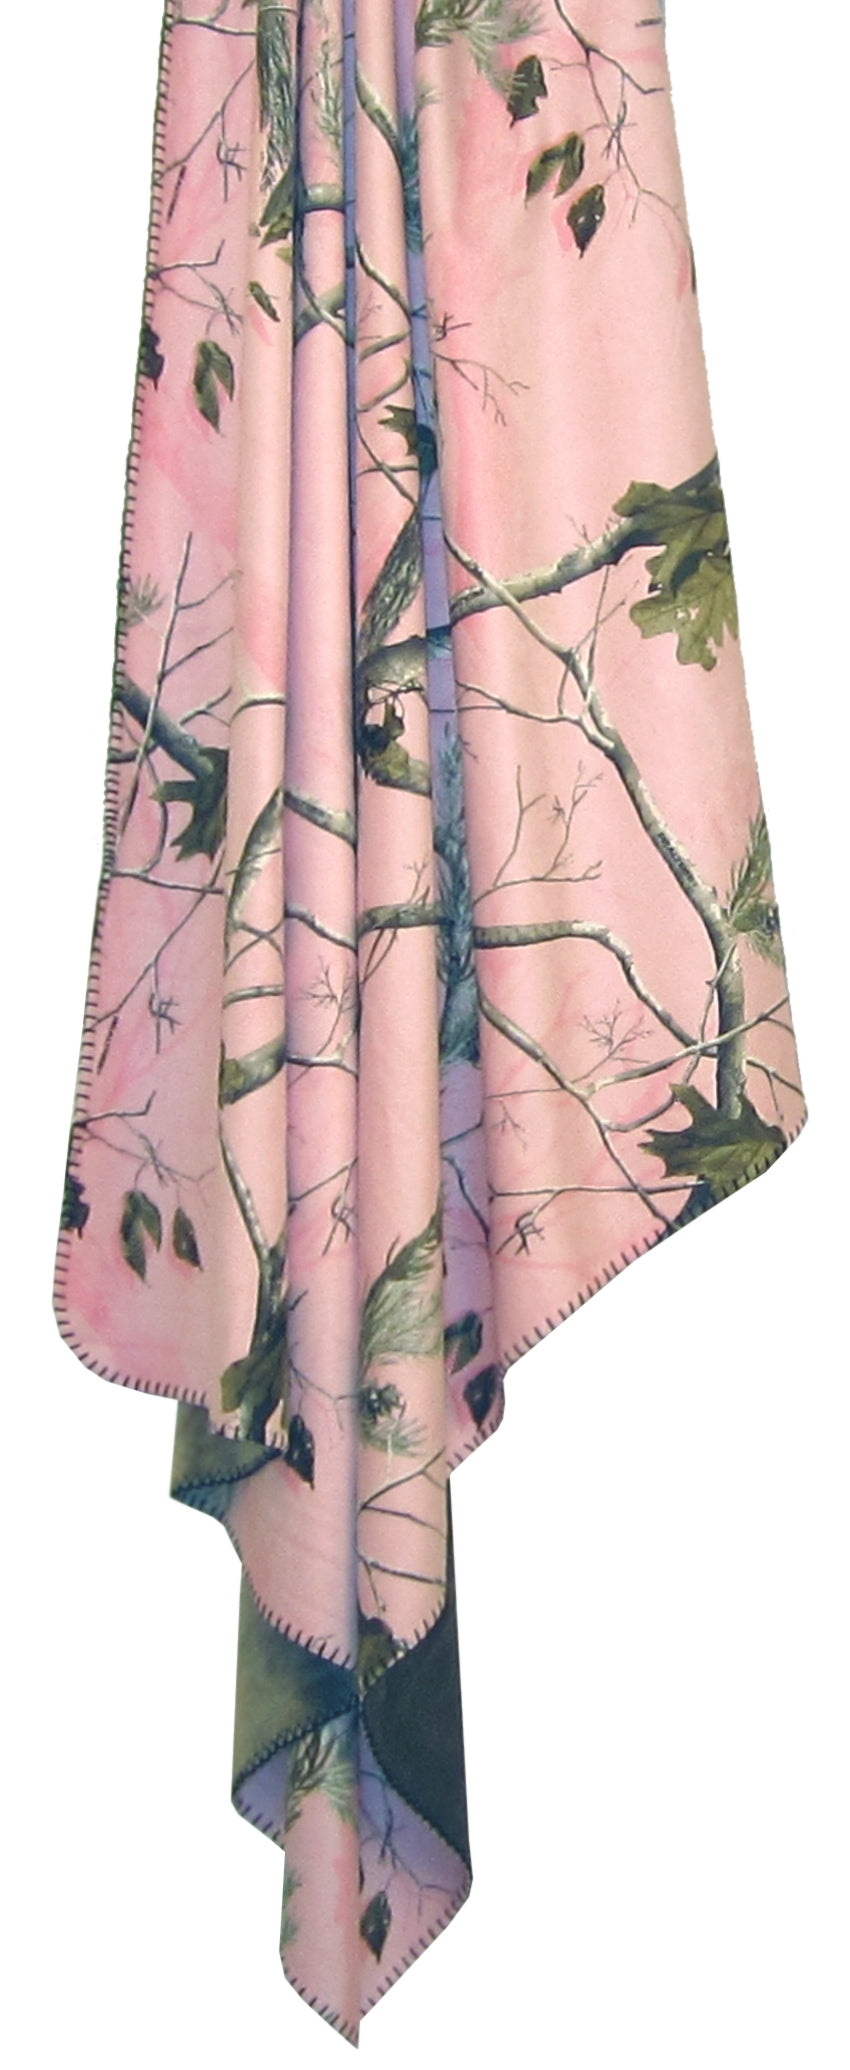 realtree-mossy-oak-pink-camo-throw-blanket-faux-suede